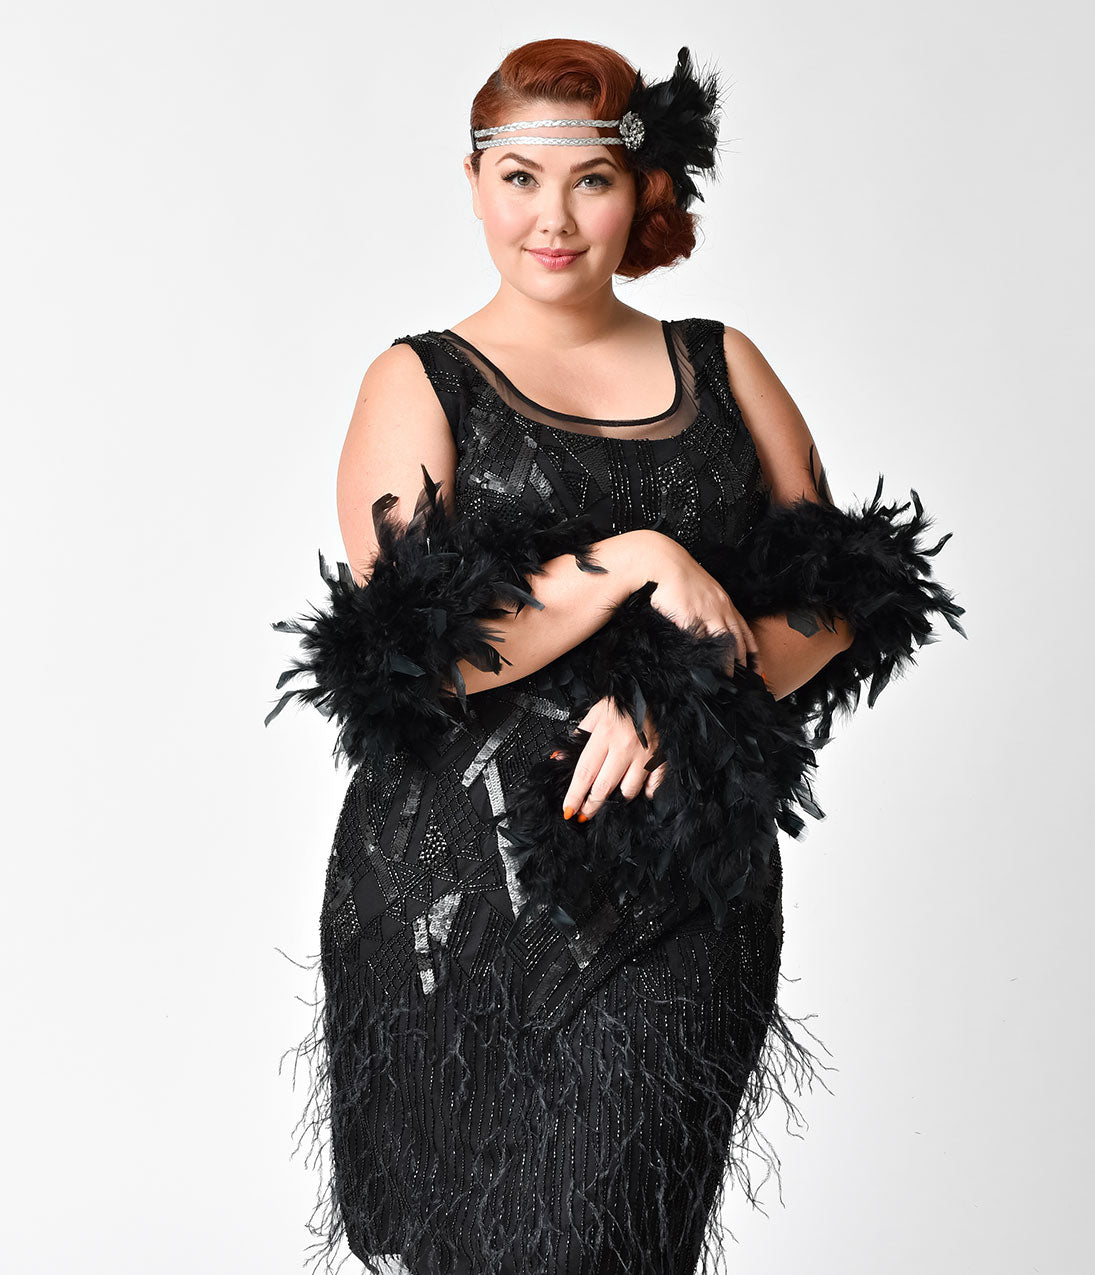 Flapper Costumes, Flapper Girl Costume 1920S Inspired Black Feather Boa $14.00 AT vintagedancer.com